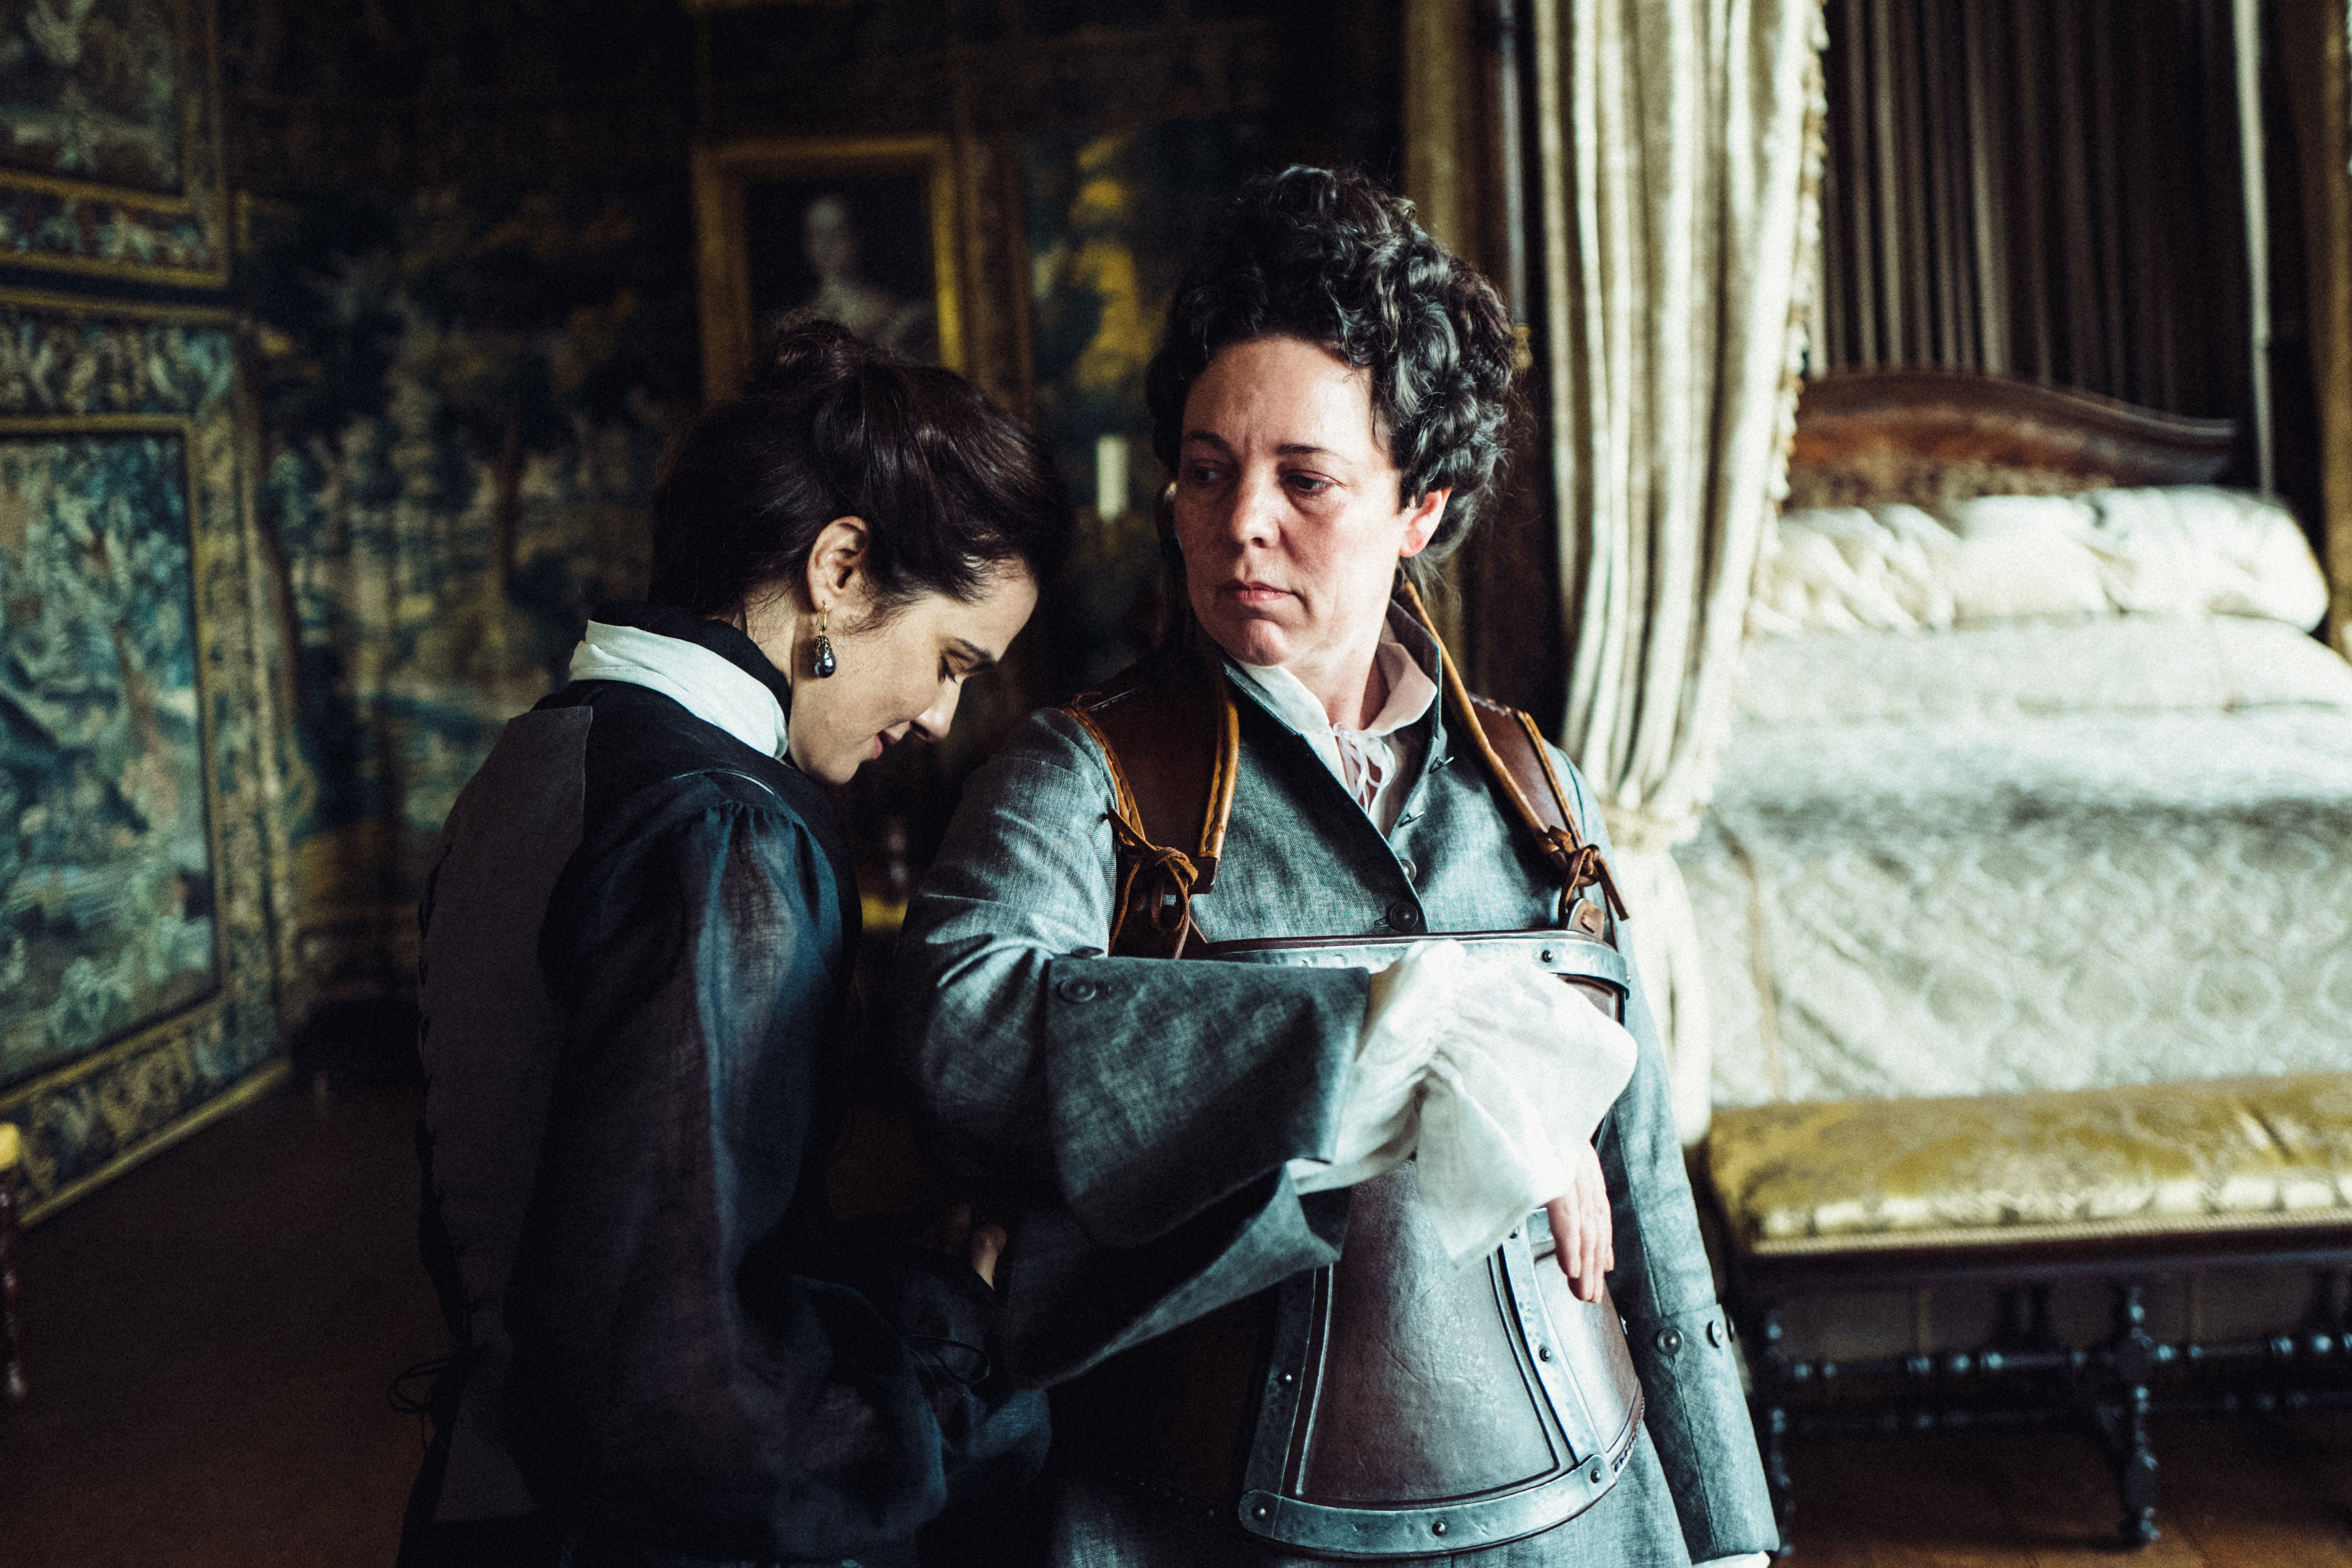 INTERVIEW: Olivia Colman On Her Return To Comedy pics